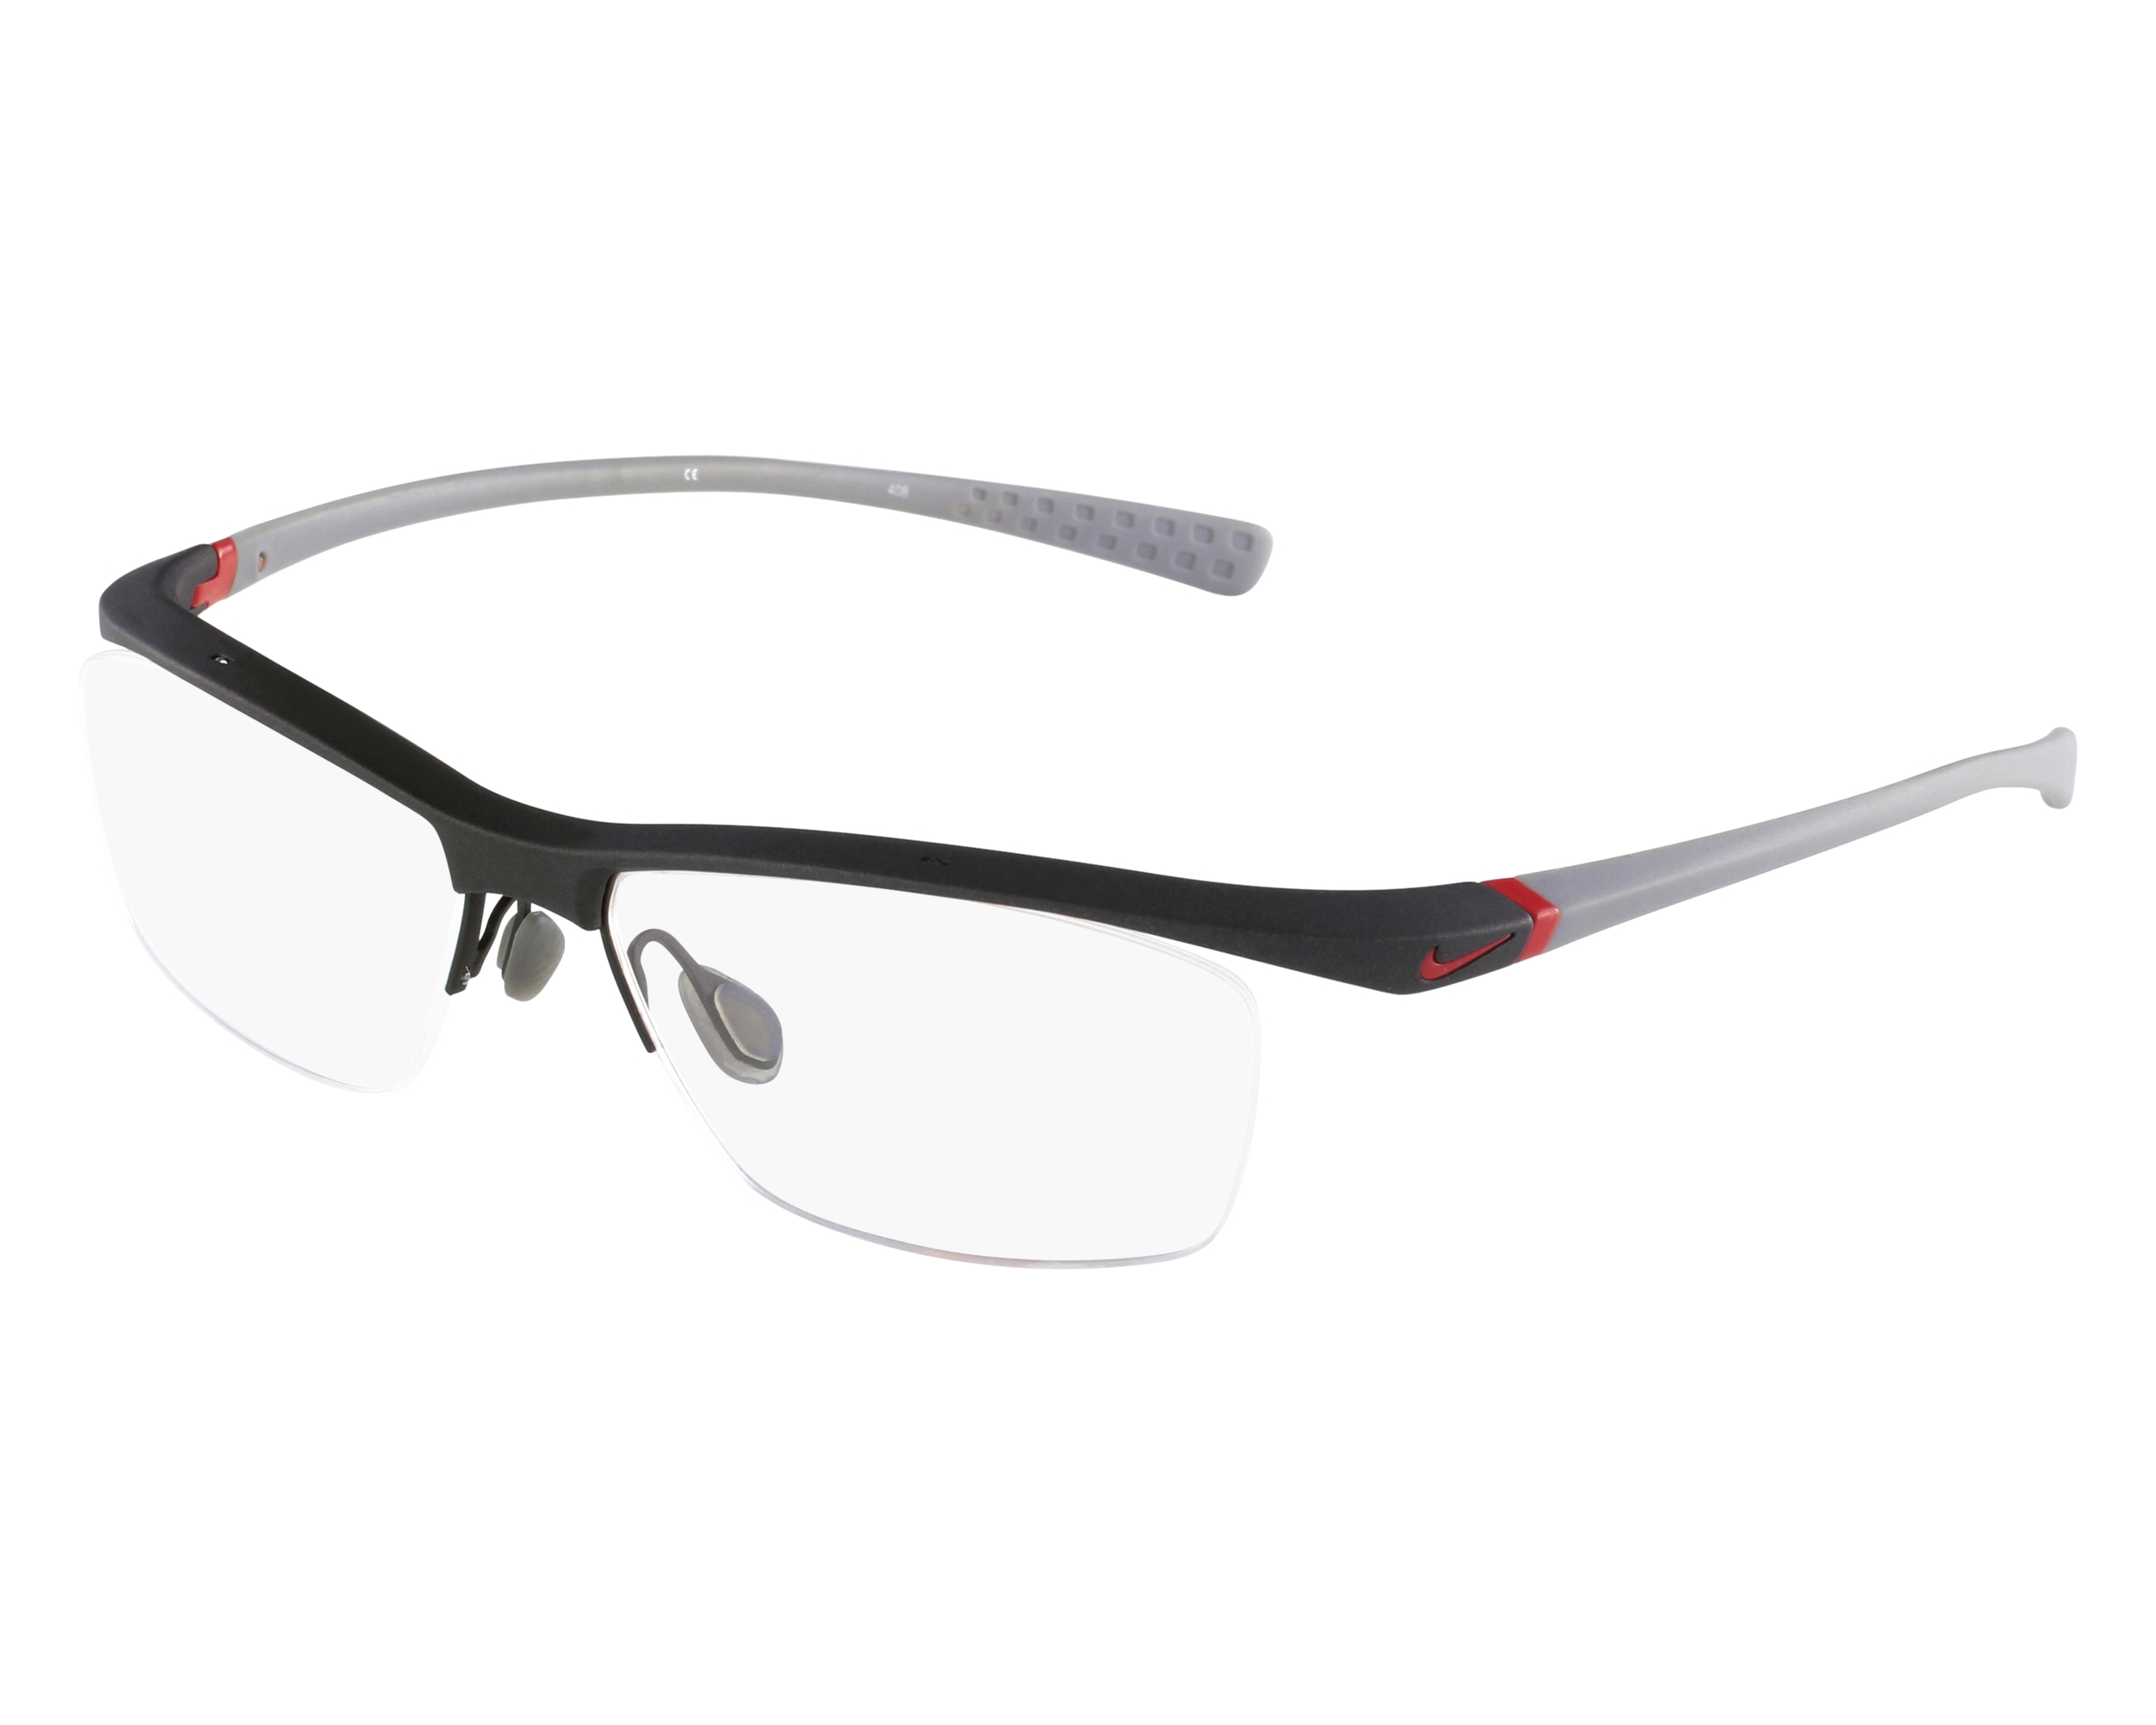 fb1fada097 eyeglasses Nike 7070-1 060 - Grey Grey front view